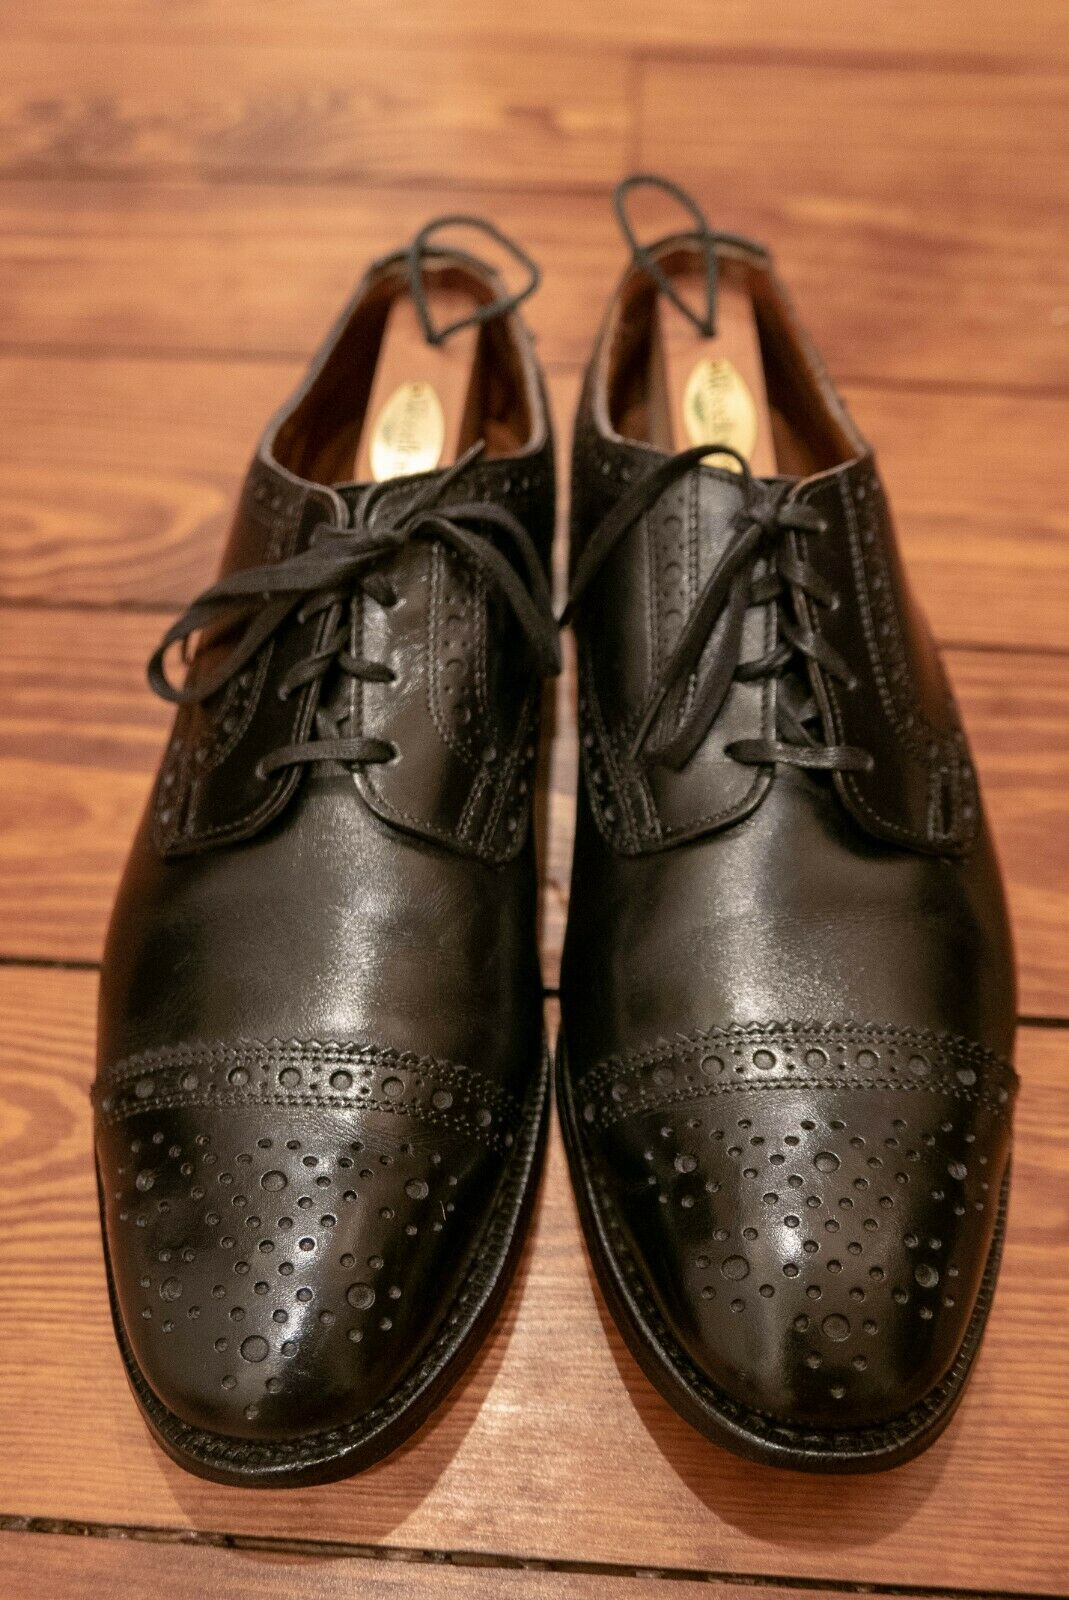 Allen Edmonds Rogue Leather shoes